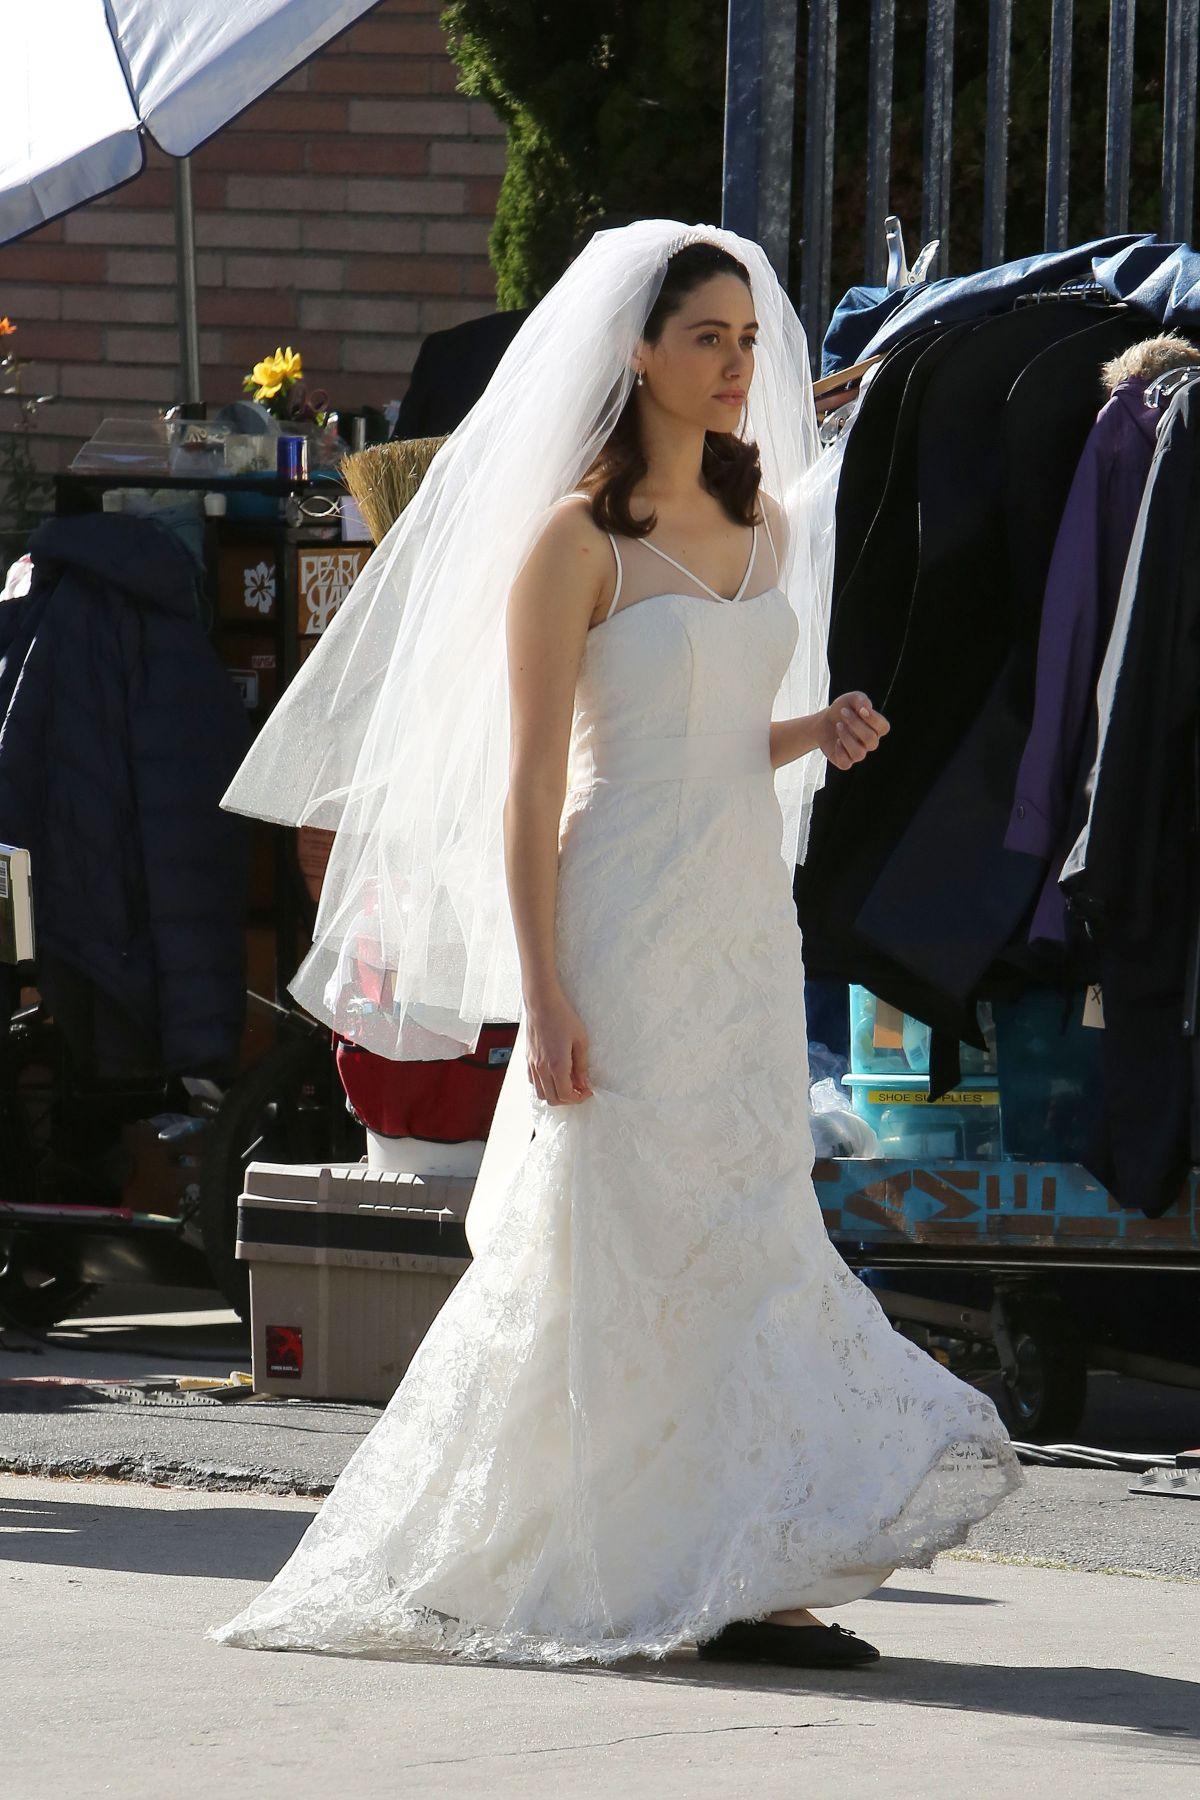 EMMY ROSSUM In Wedding Dress On The Set Of Shameless Los Angeles 12 02